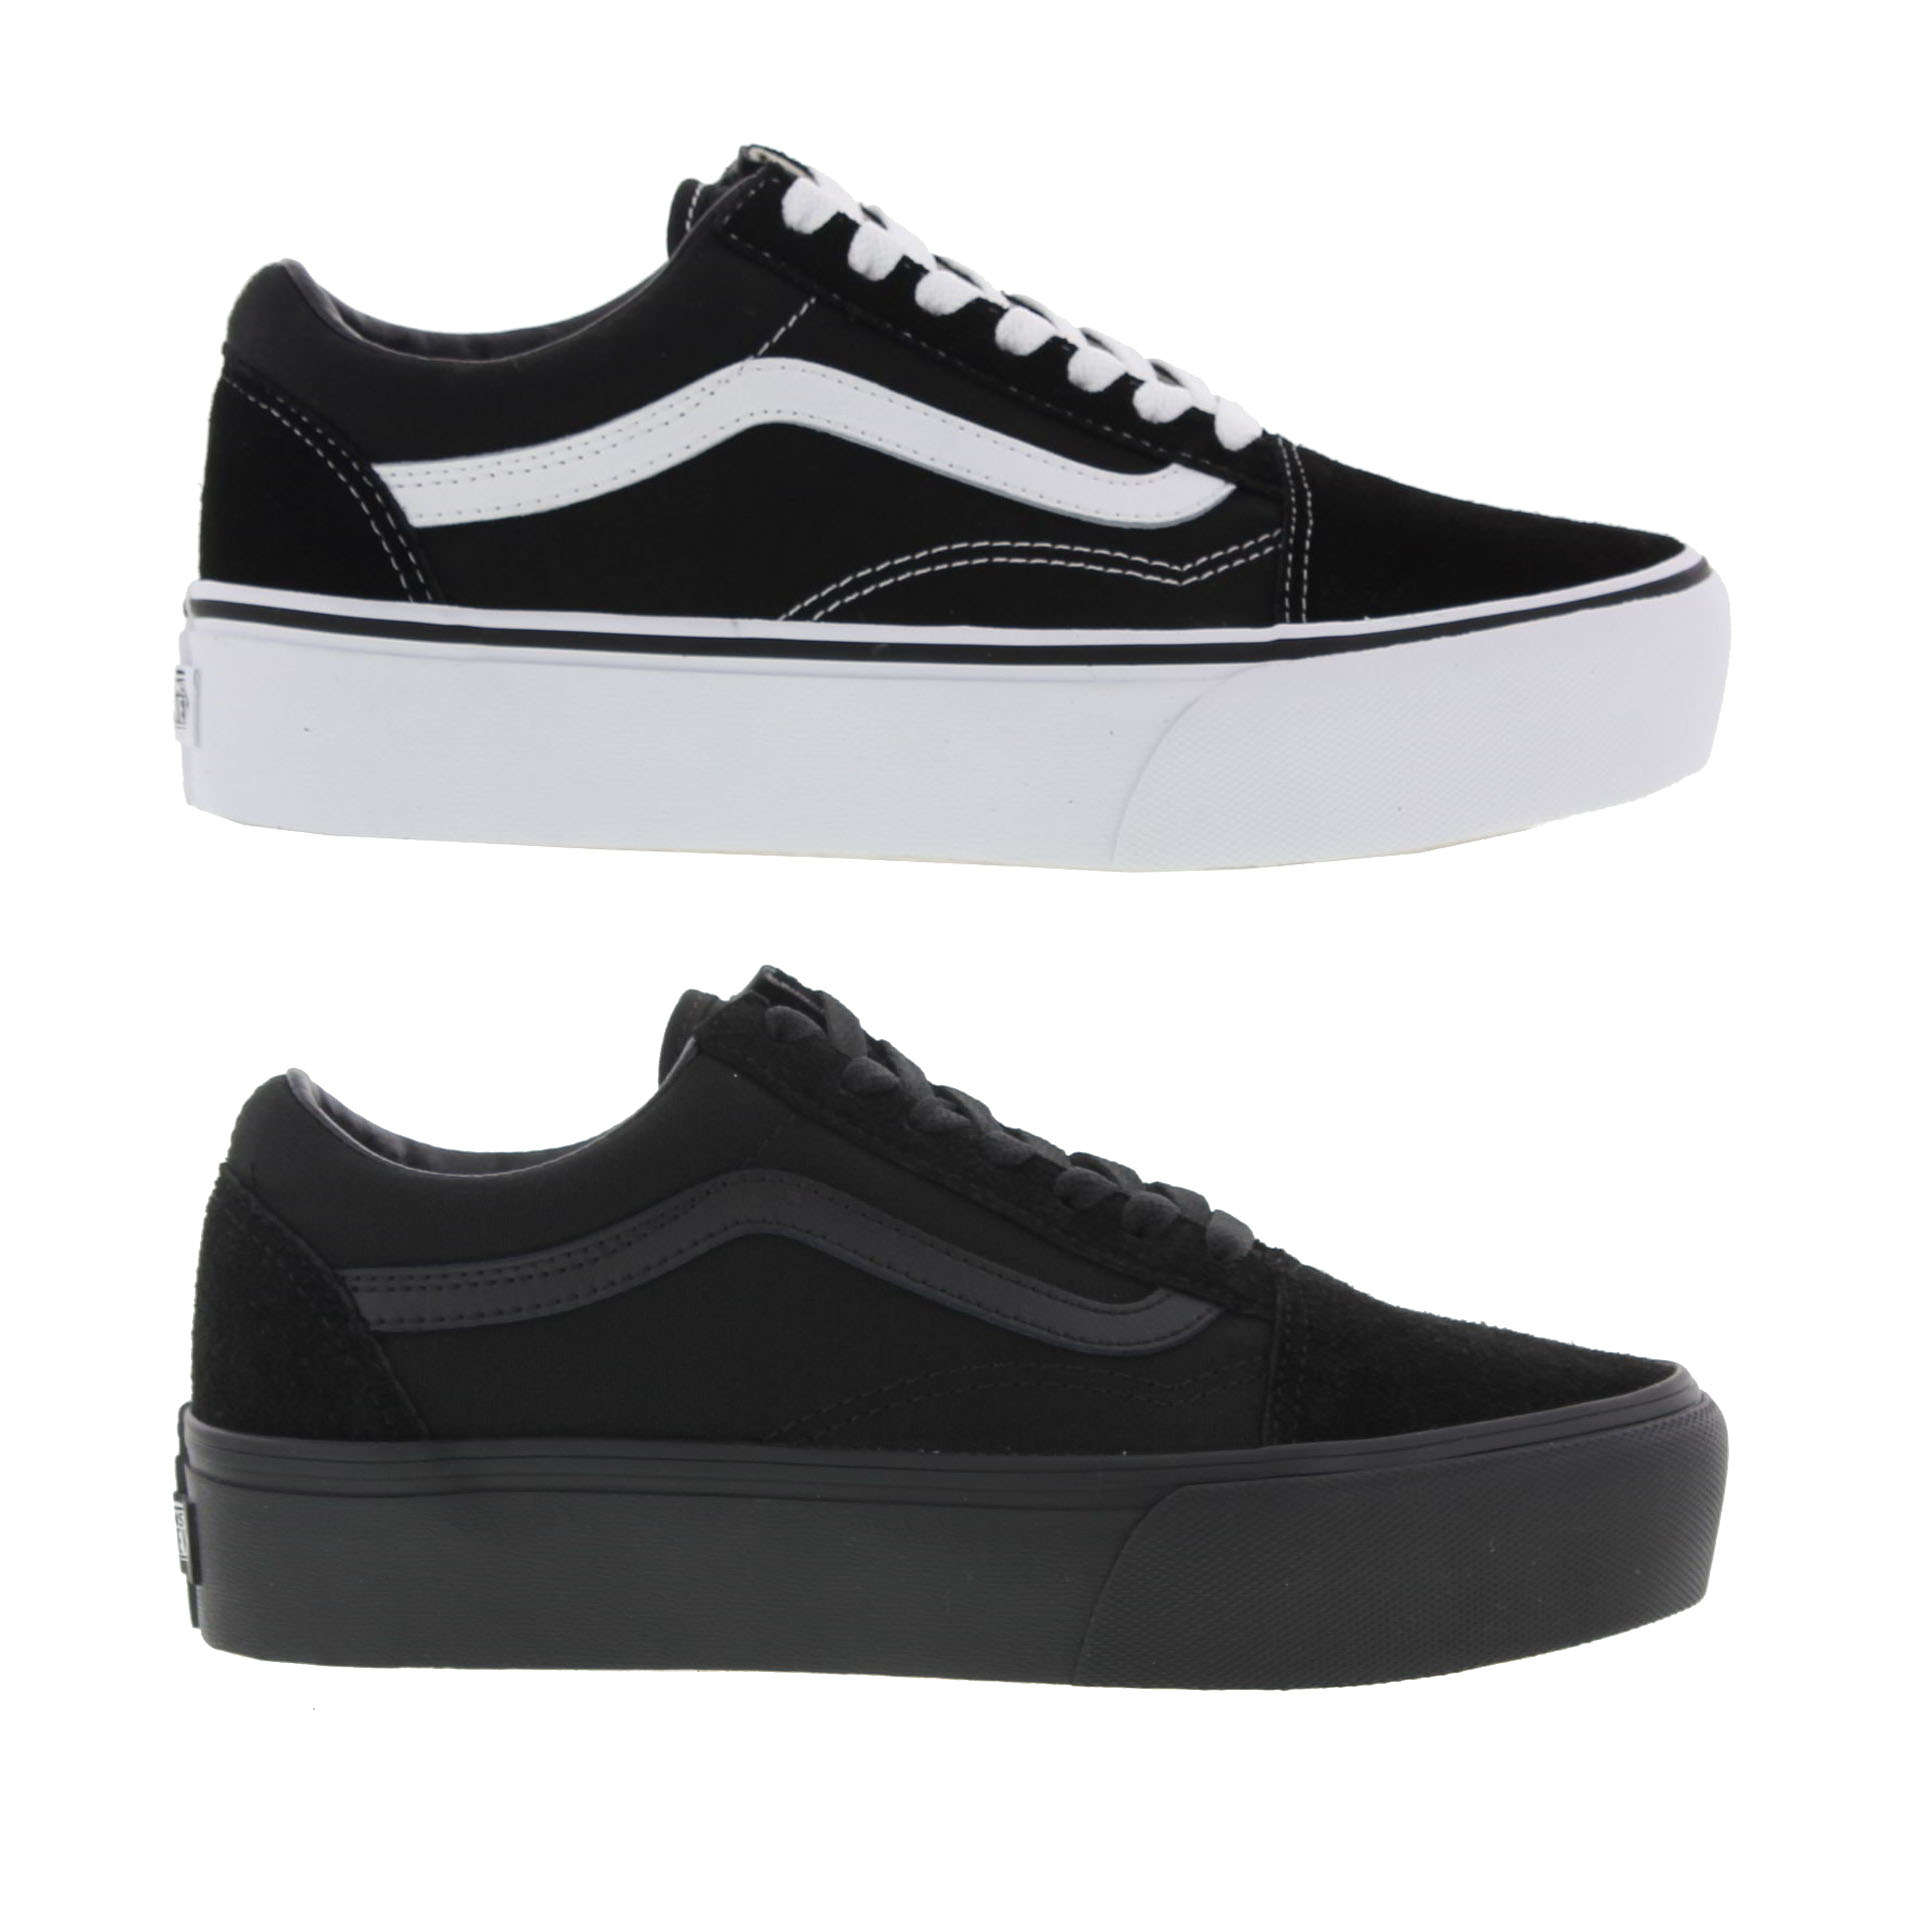 Bandiere Old Nere Vans Black Friday Skool FcTl31KJ